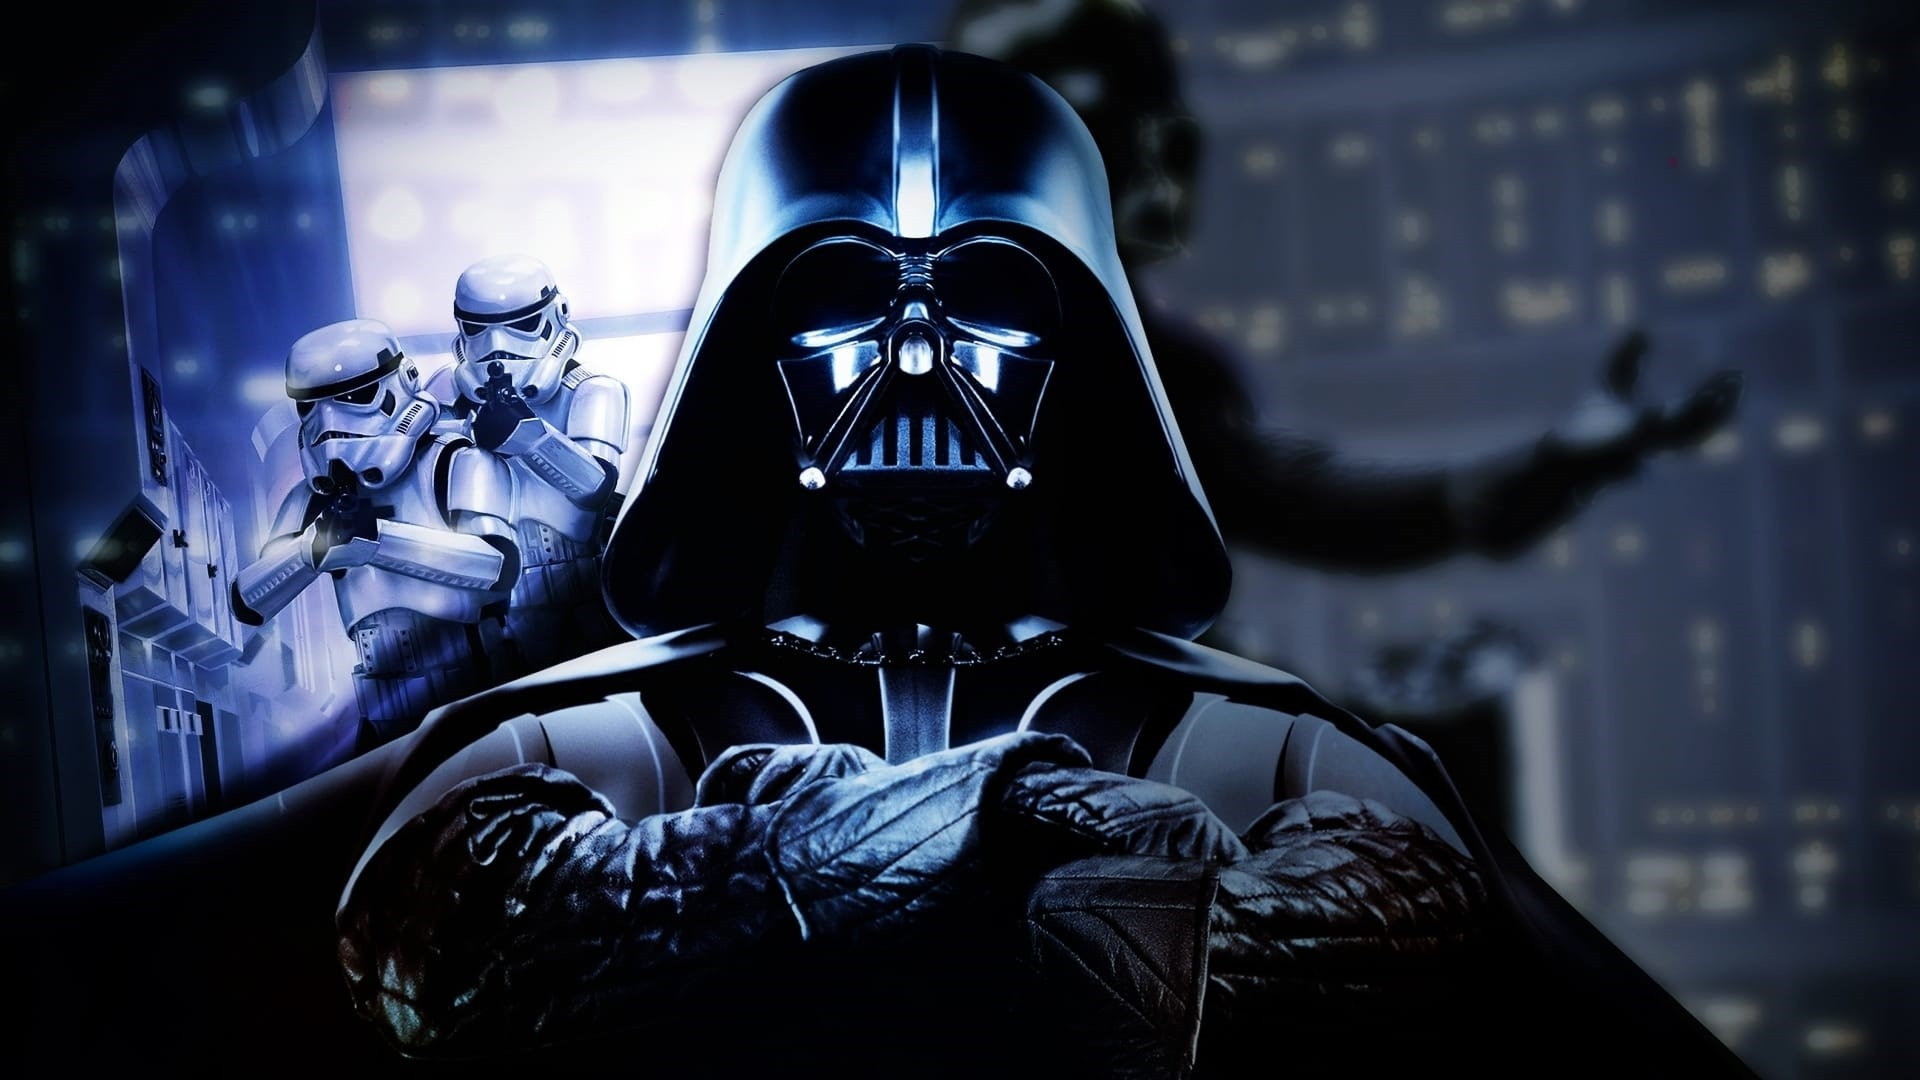 Darth Vader Wallpaper 1920x1080